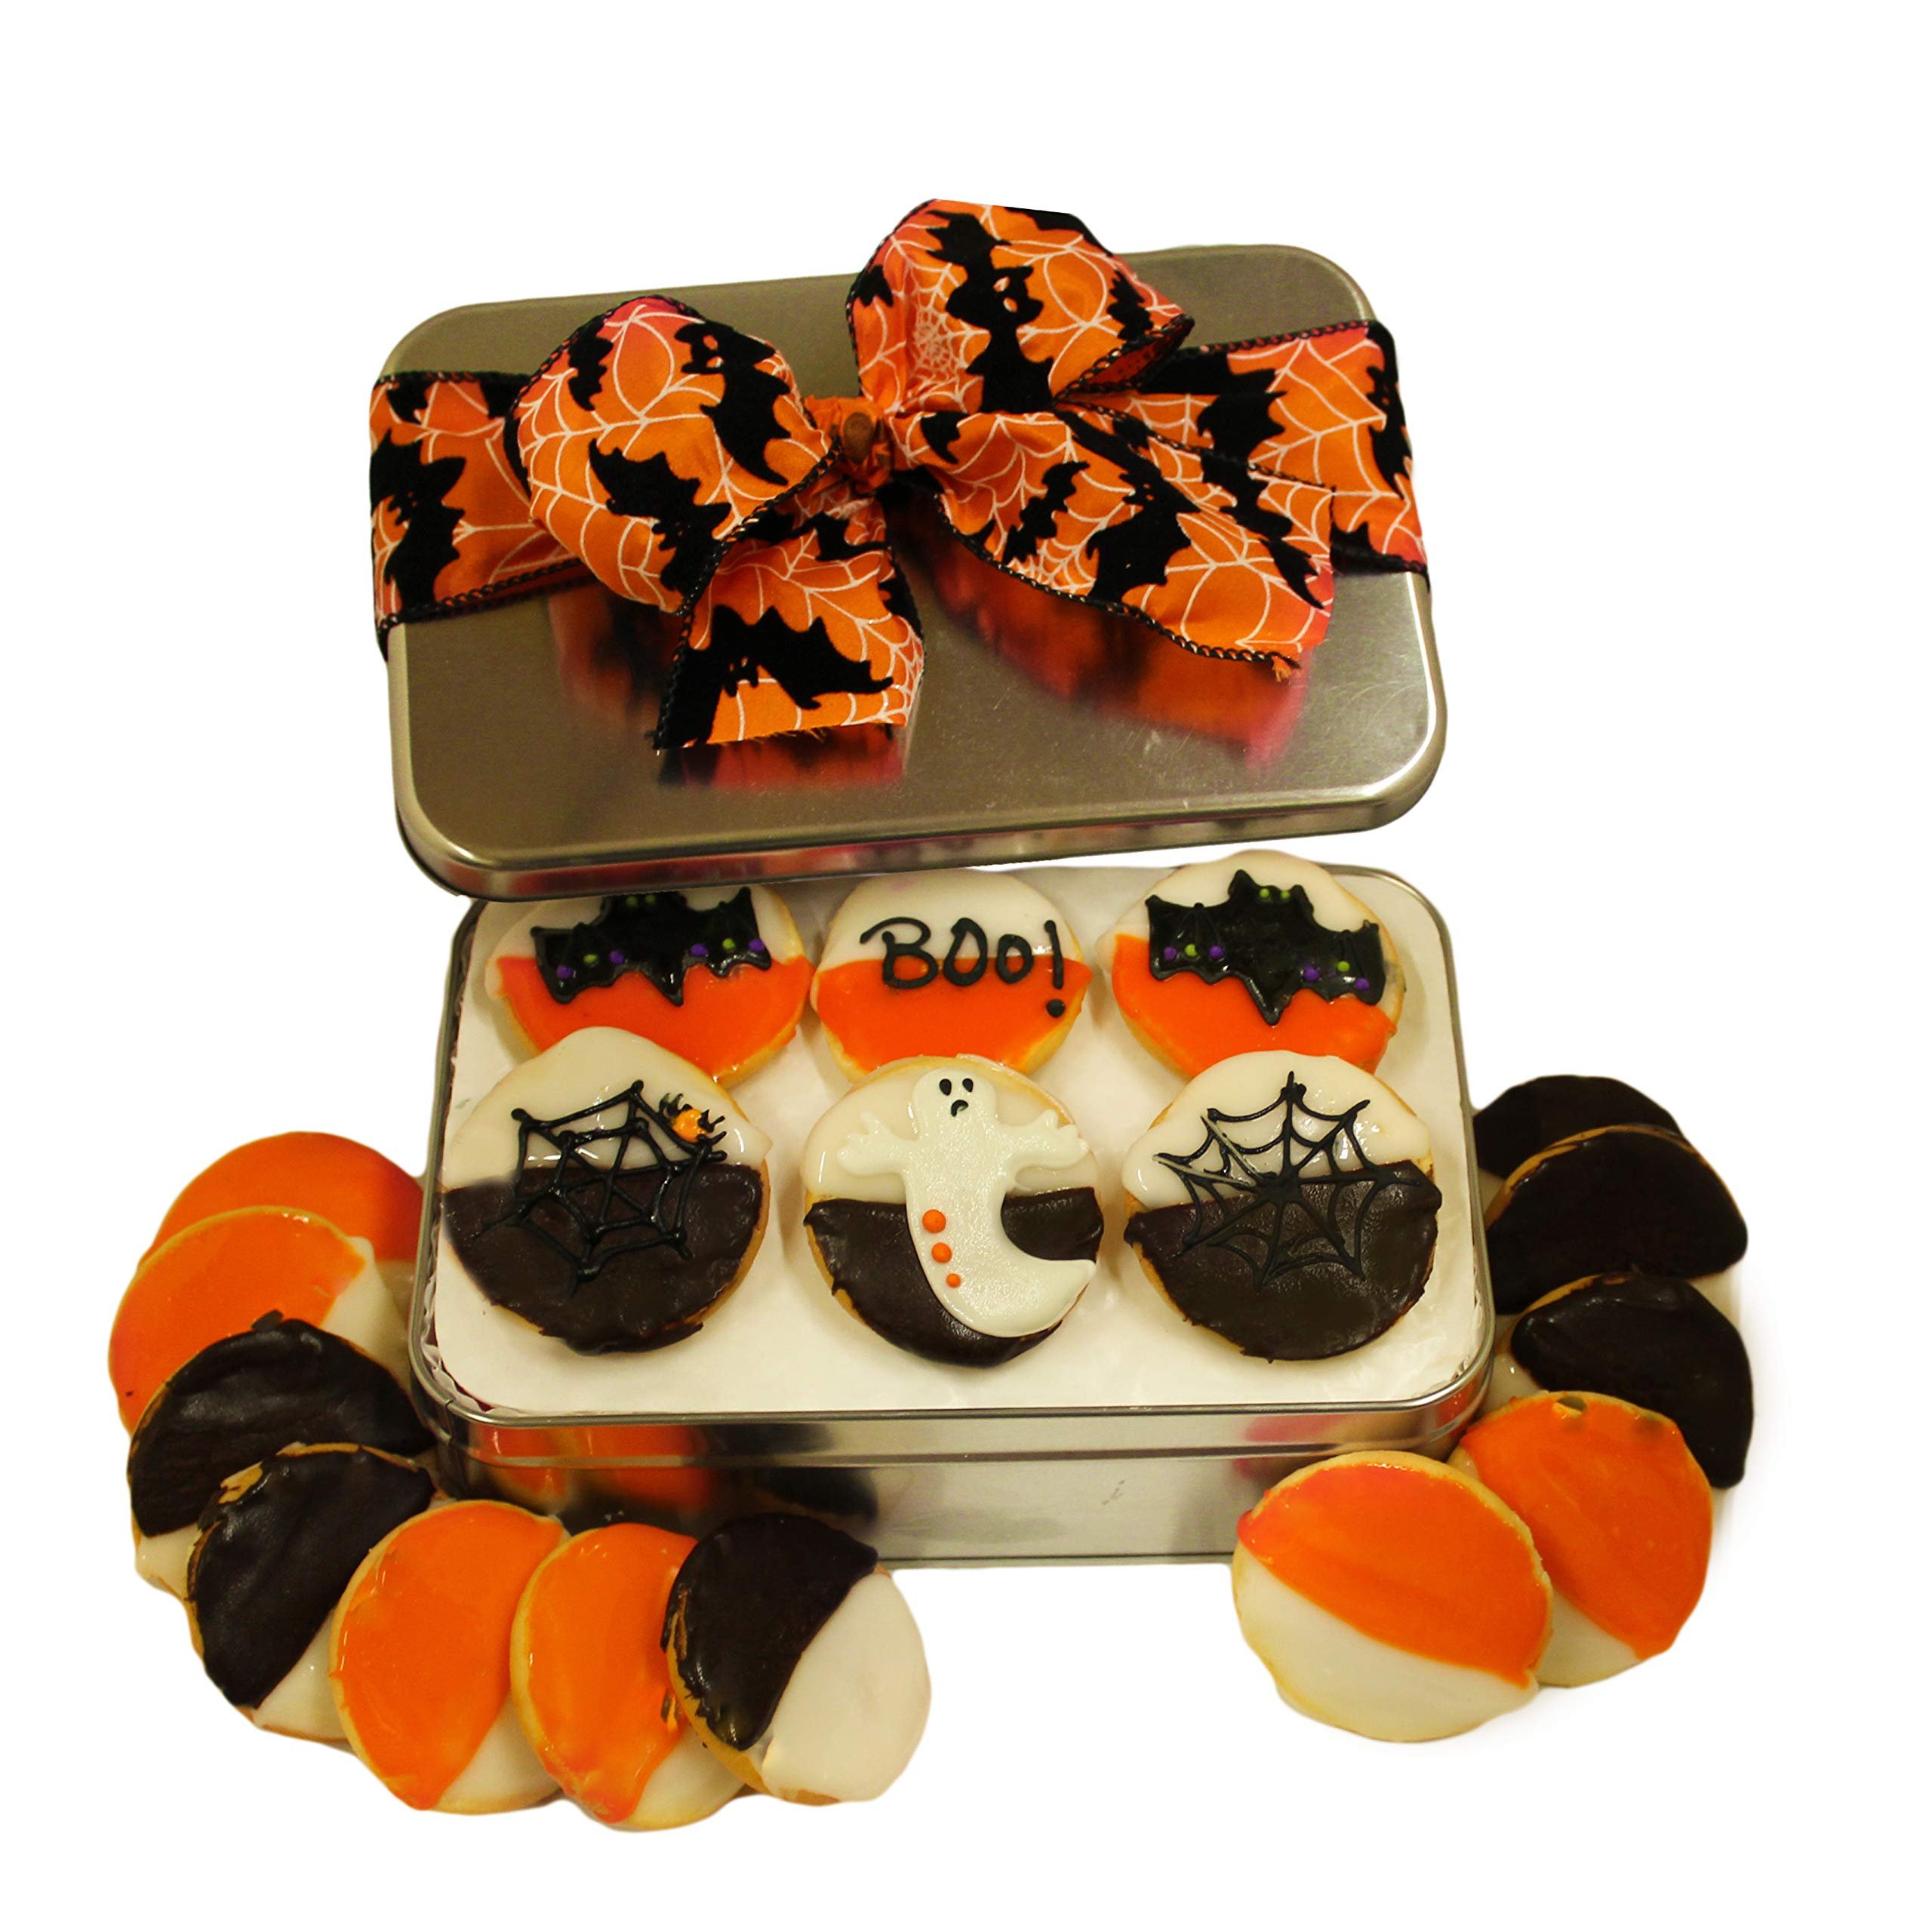 Halloween Cookie Gift Basket Tin Filled with 18 Decorated Cookies Gourmet Great Spooky Trick or Treat Gift Idea for Boys Girls Kids Adults Men Women PRIME DELIVERY by Custom Cookies